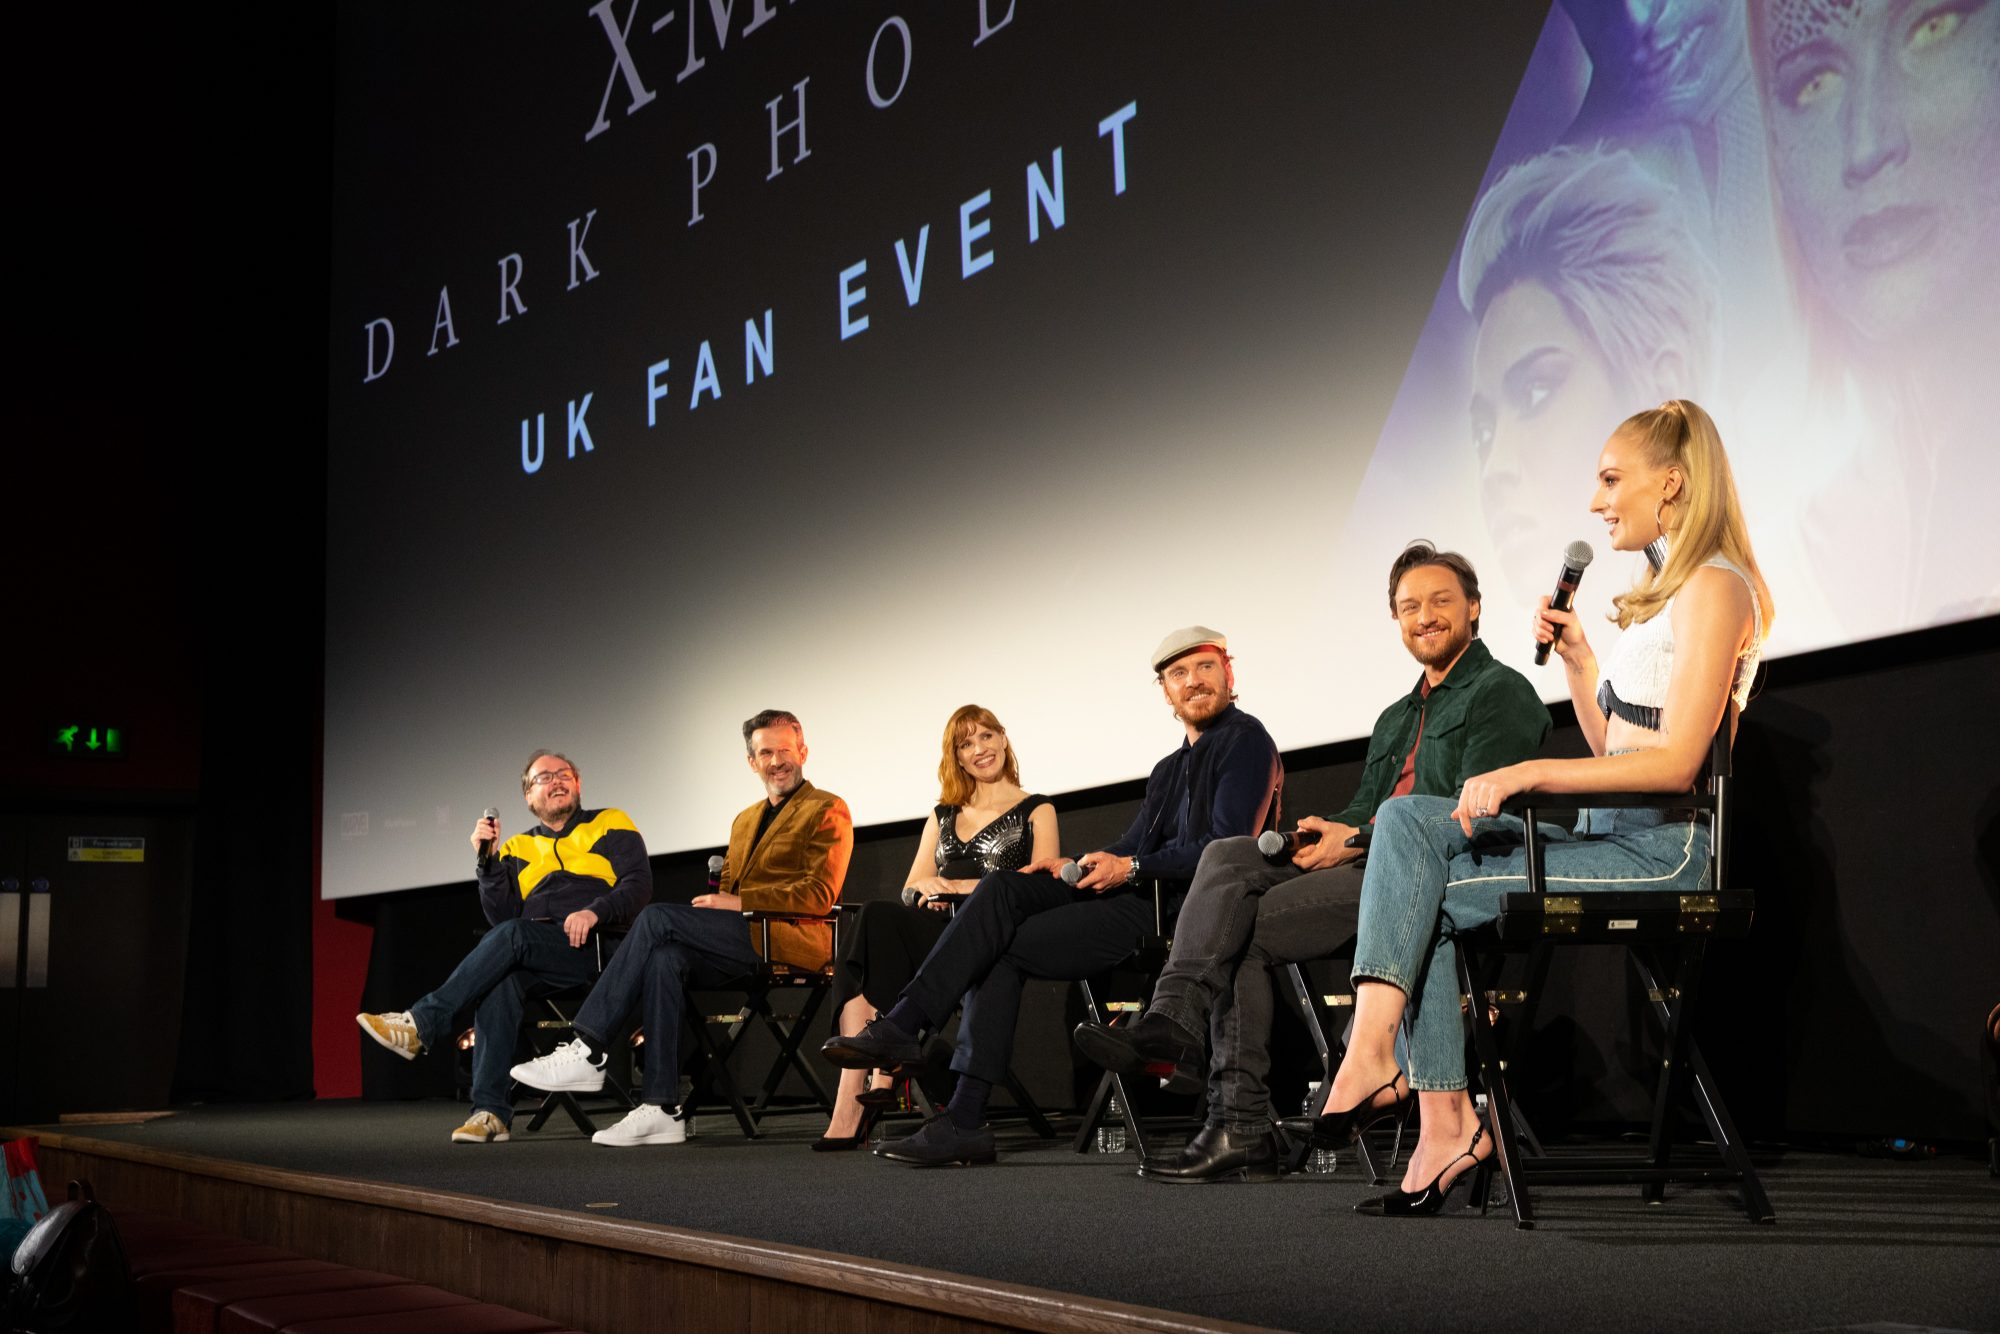 "Michael Fassbender, Sophie Turner, Simon Kinberg, Jessica Chastain, and James McAvoy attend the UK Fan Event of <a href=""https://entertainment.ie/cinema/movie-reviews/x-men-dark-phoenix-7257/"">X-Men: Dark Phoenix</a> in London."